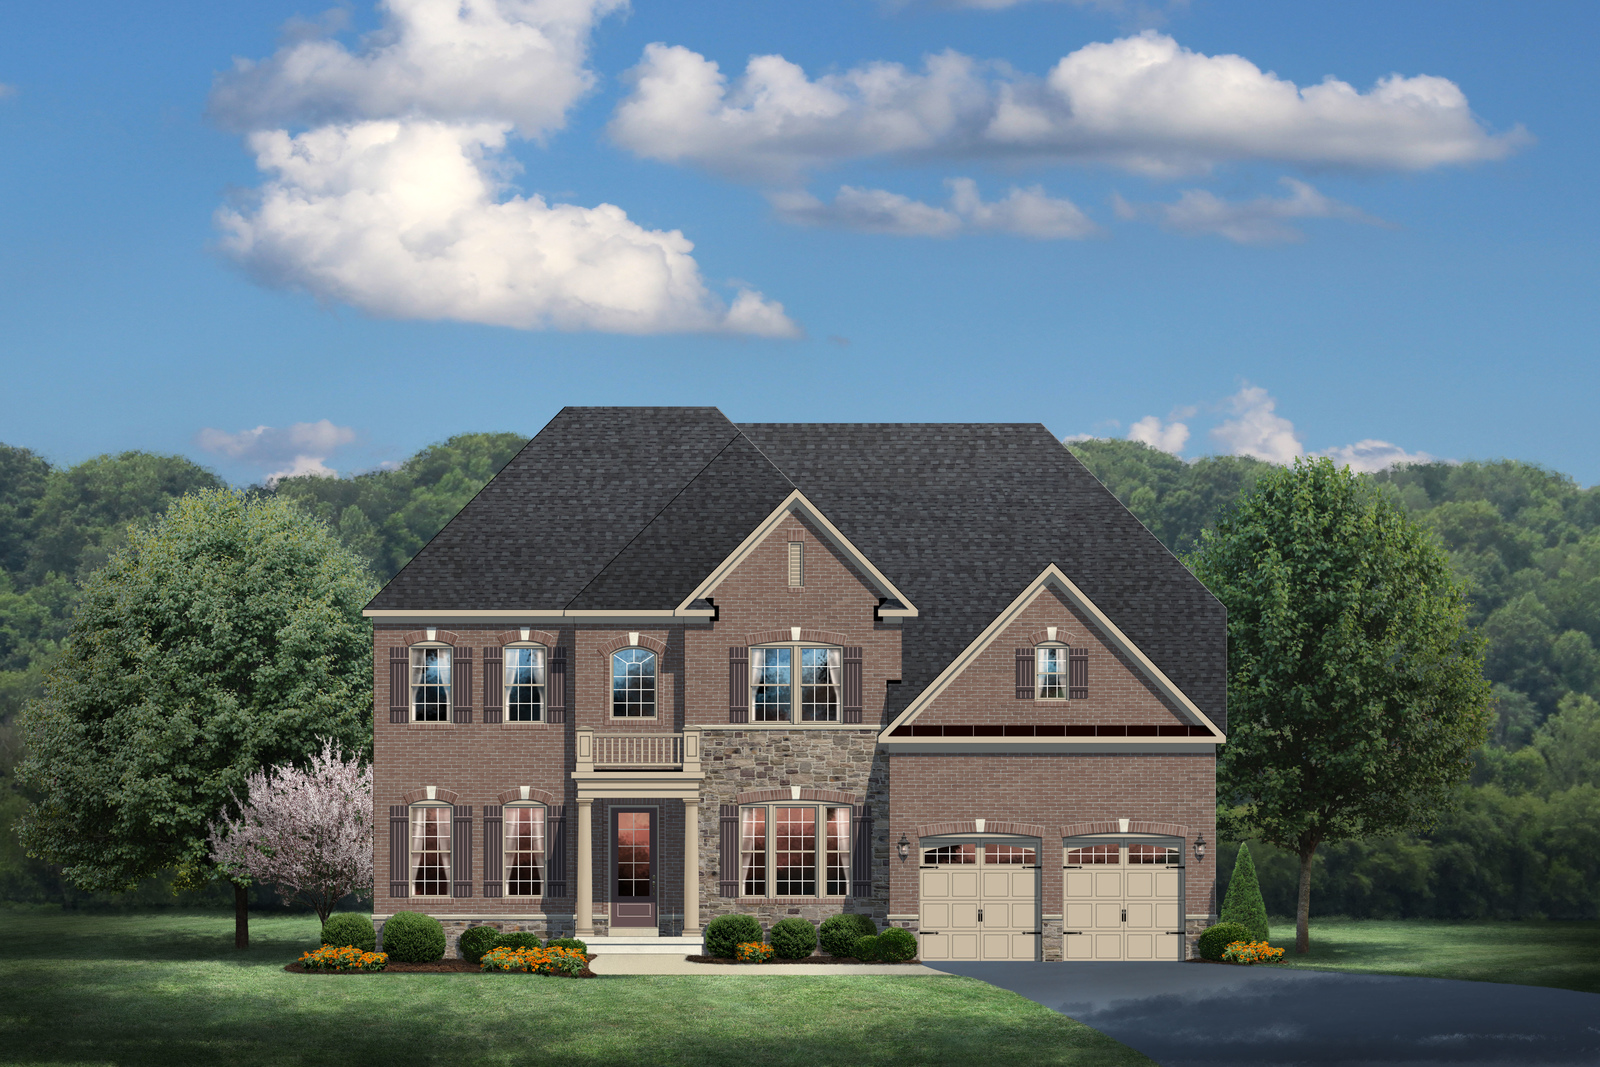 New chapel hill ii home model for sale heartland homes for Heartland homes pittsburgh floor plans